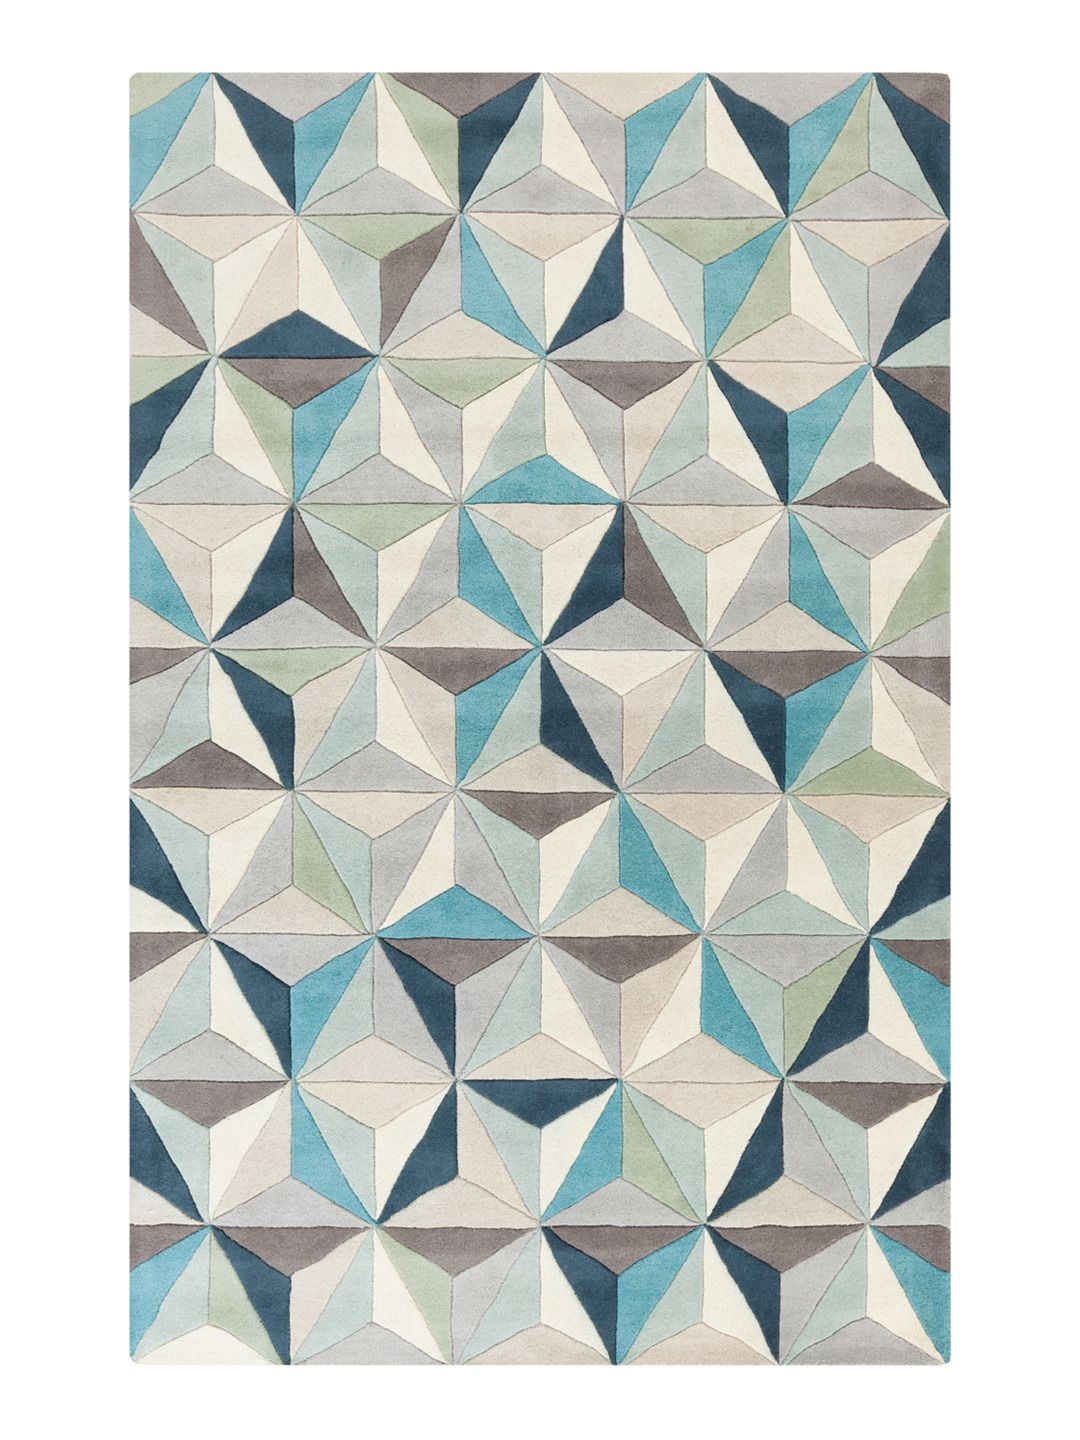 Oasis Hand-Tufted Rug by Surya at Gilt